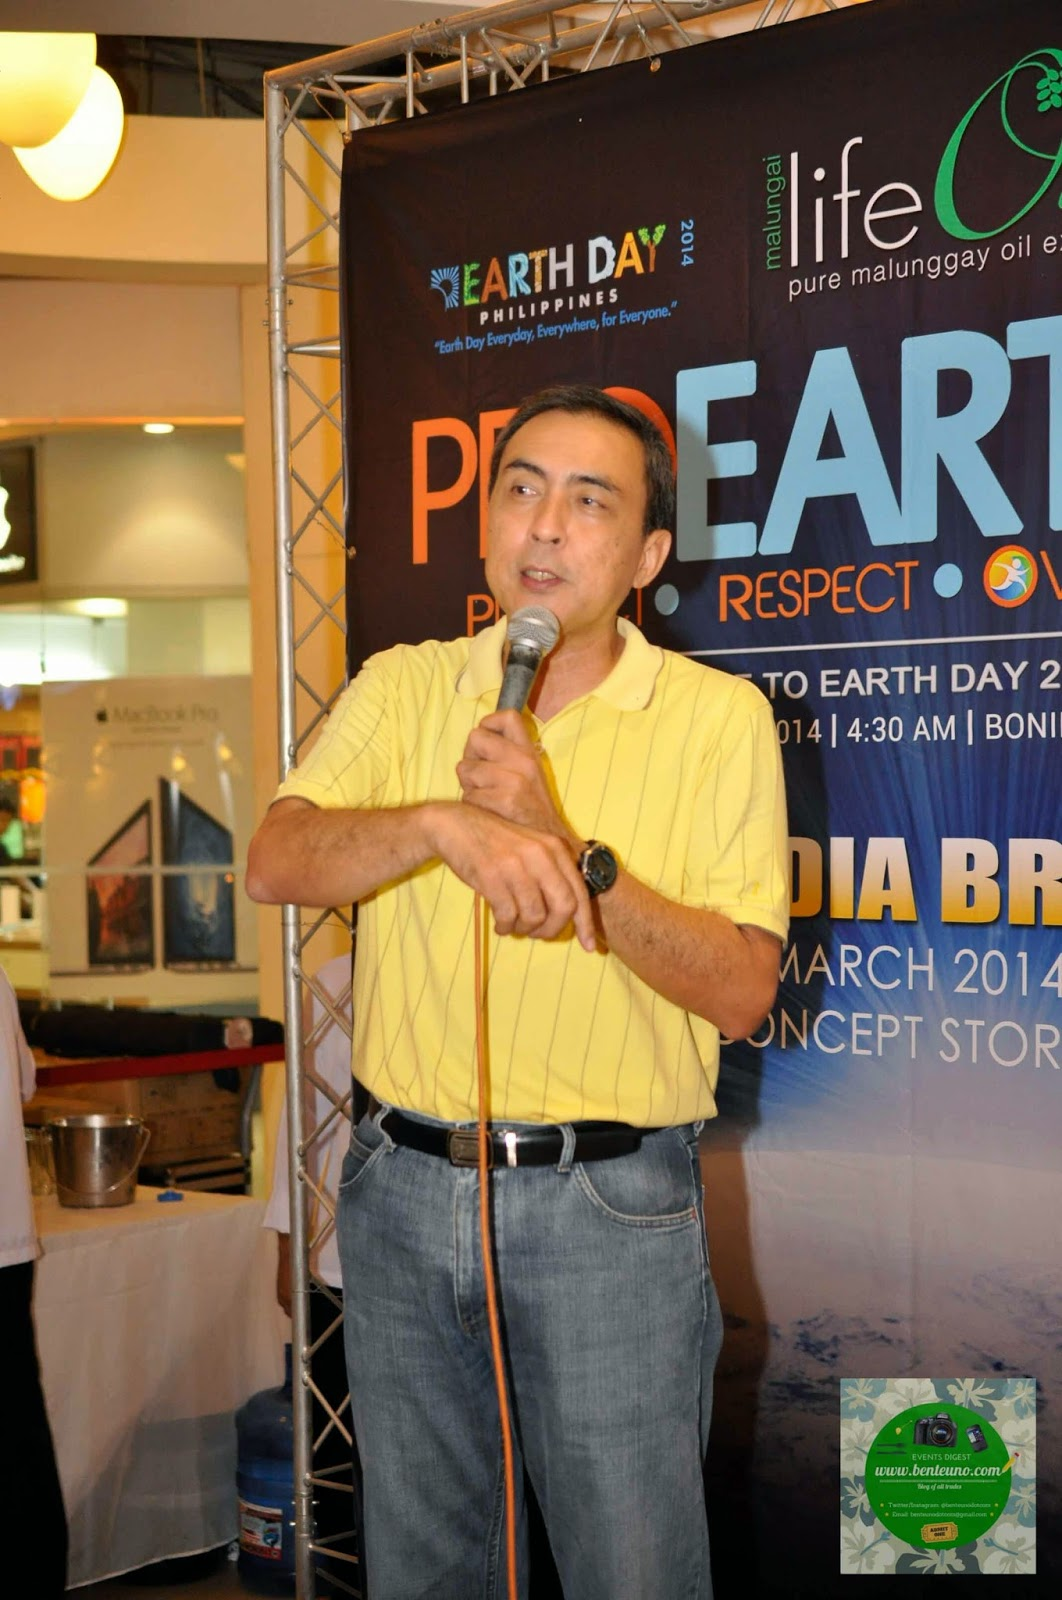 Bert Guevara, President of Earth Day Network Philippines